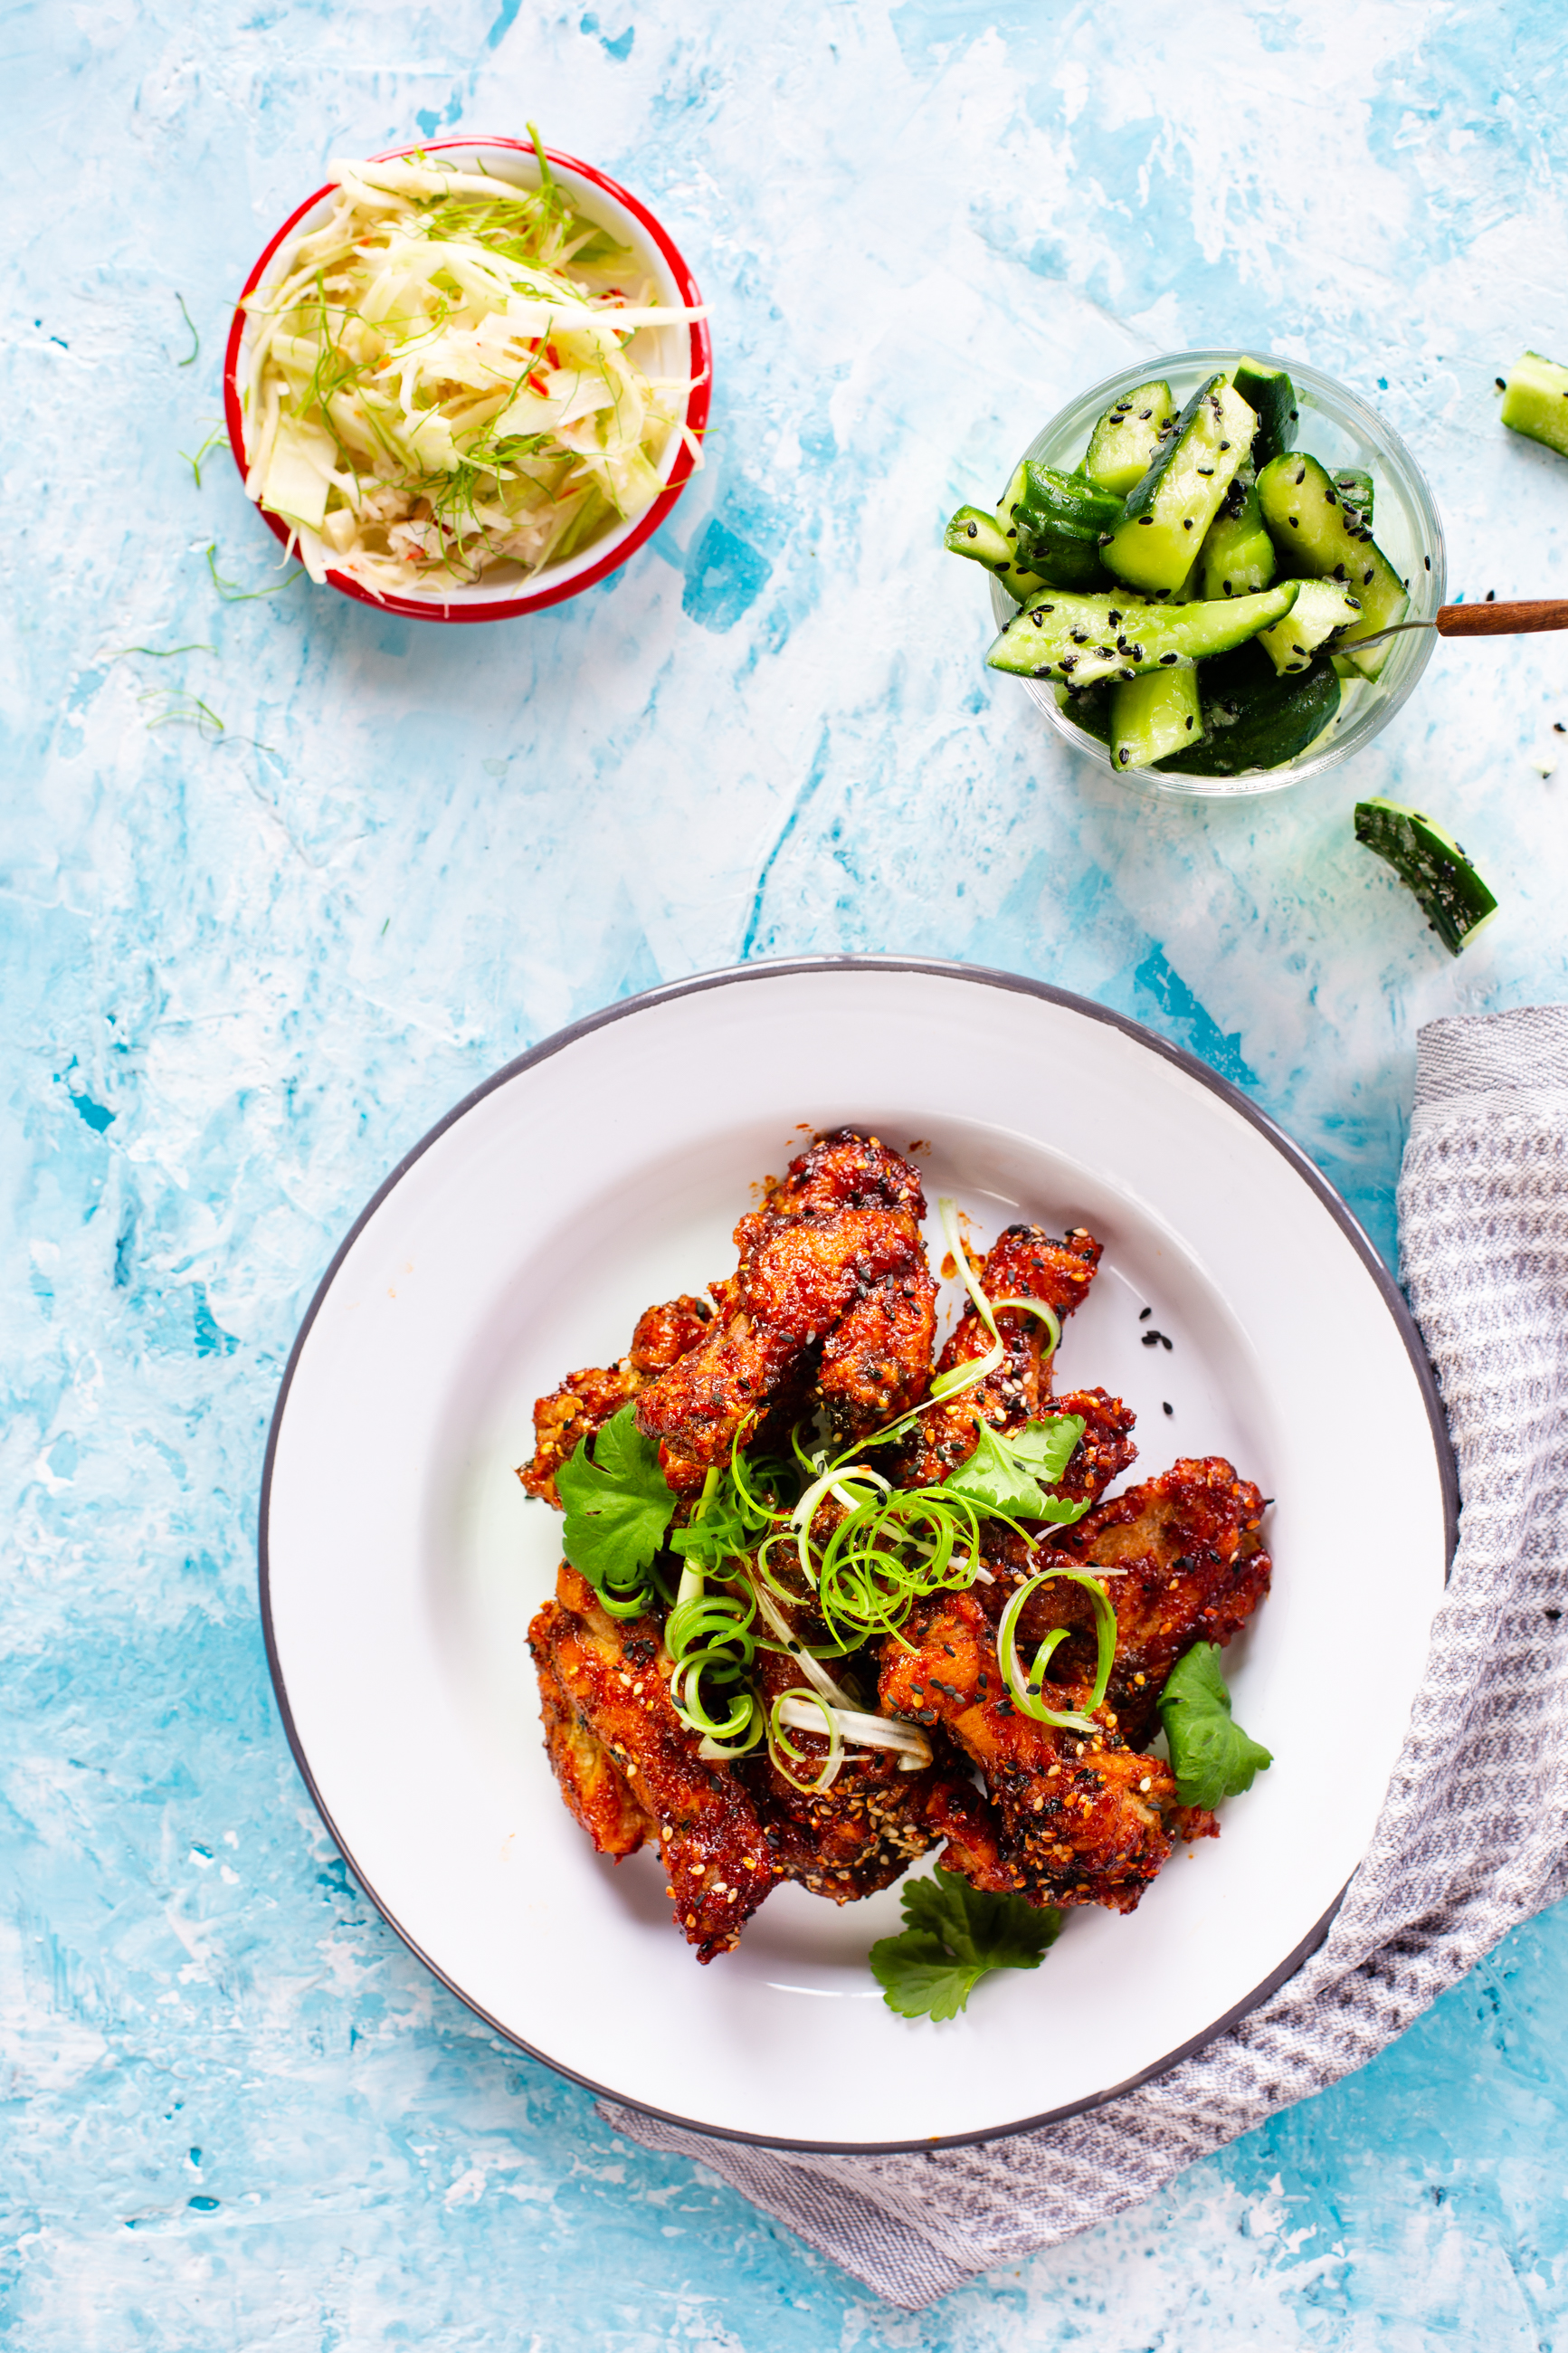 Deep-fried Sweet and Spicy Chicken Wings